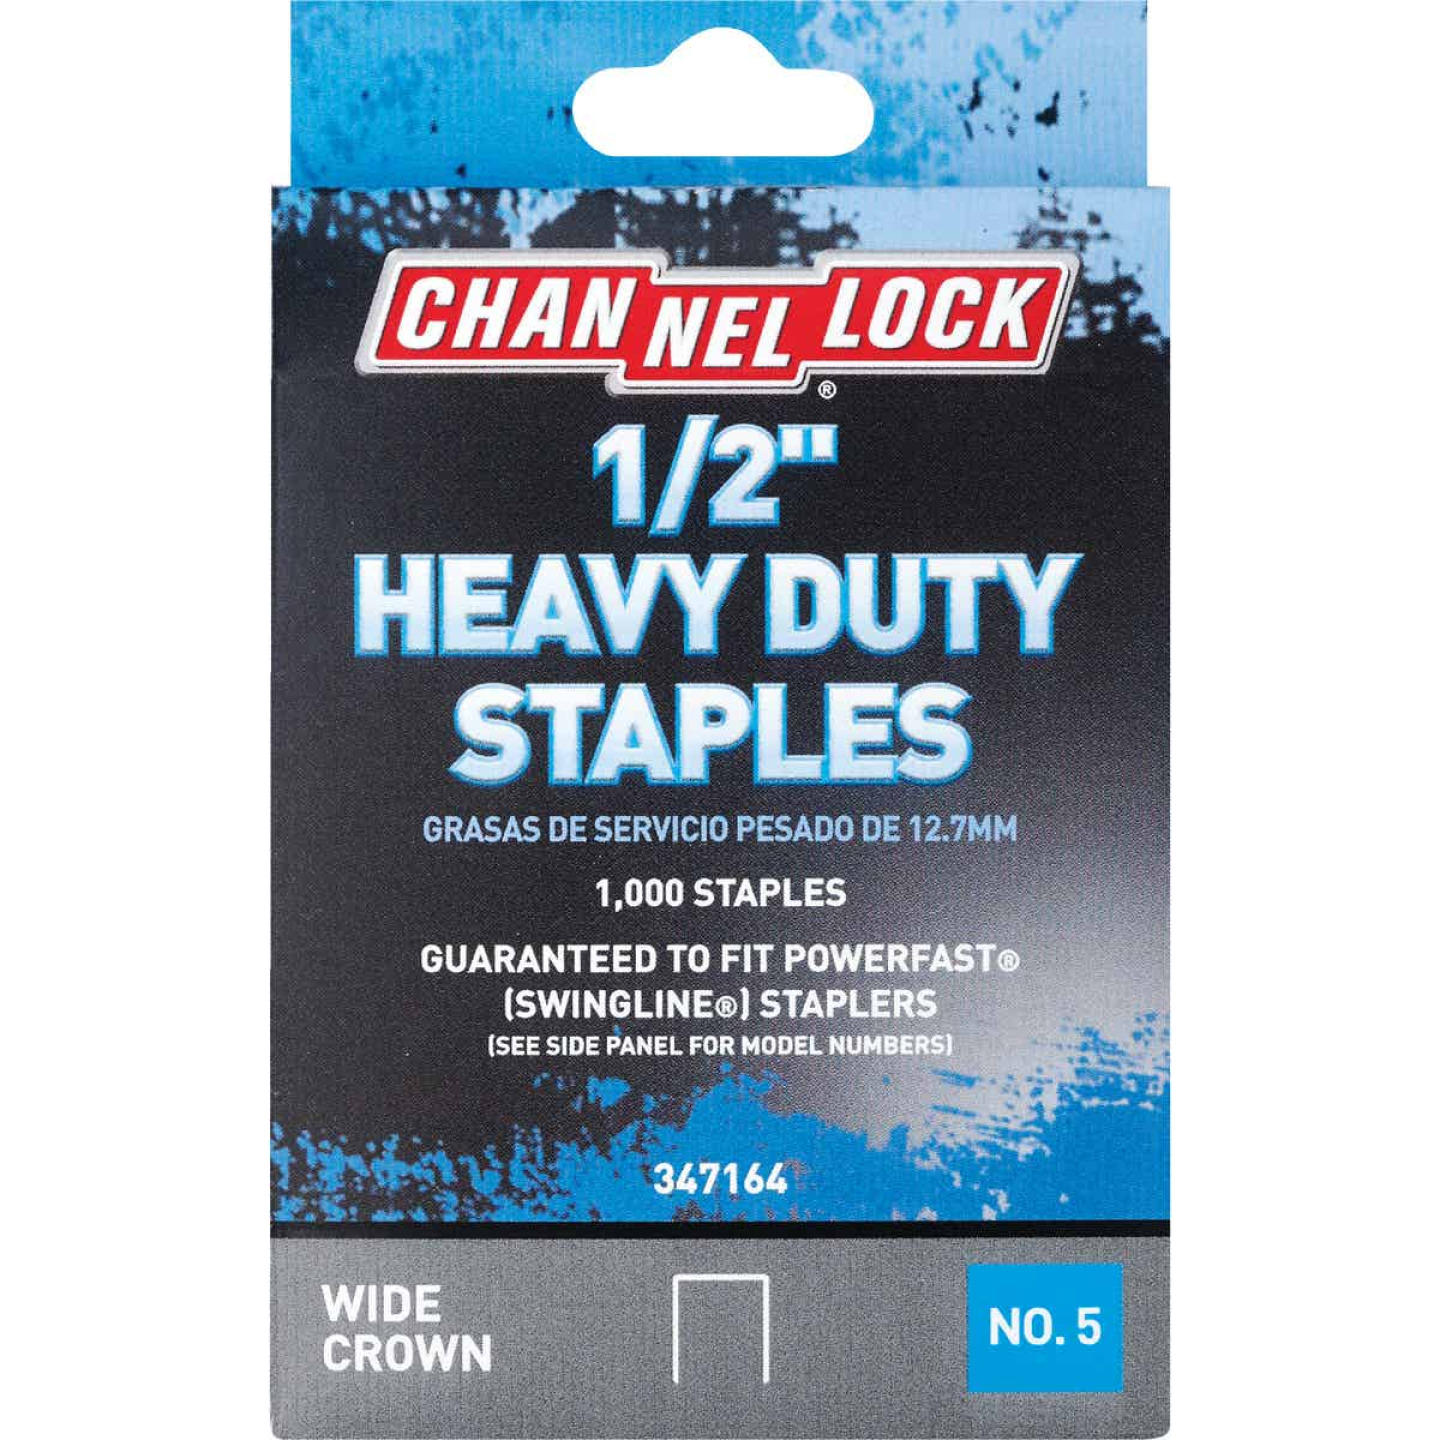 Channellock No. 5 Heavy-Duty Wide Crown Staple, 1/2 In. (1000-Pack) Image 1